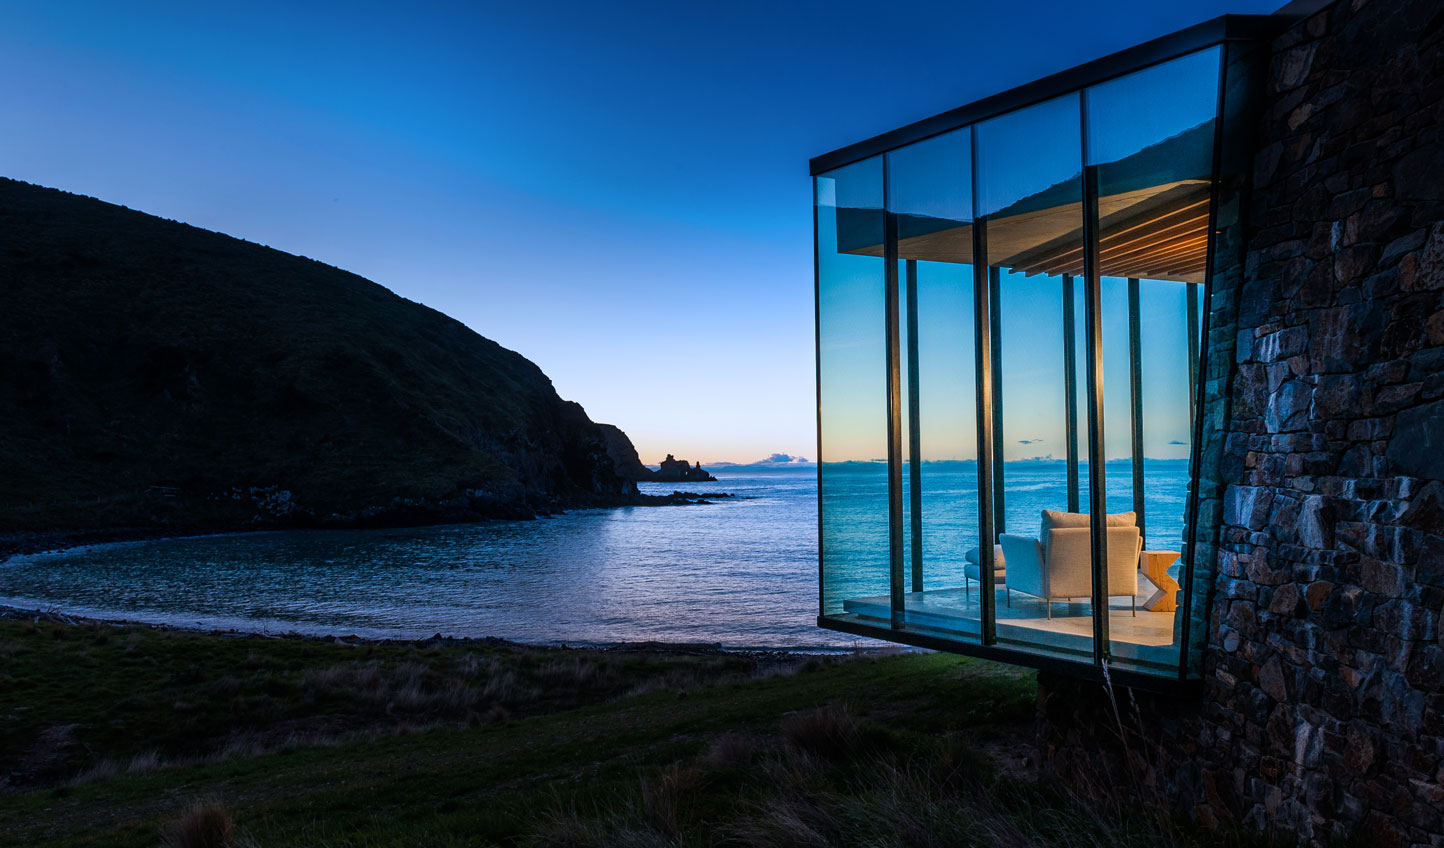 Image - Seascape, Annandale - remote luxury at its finest